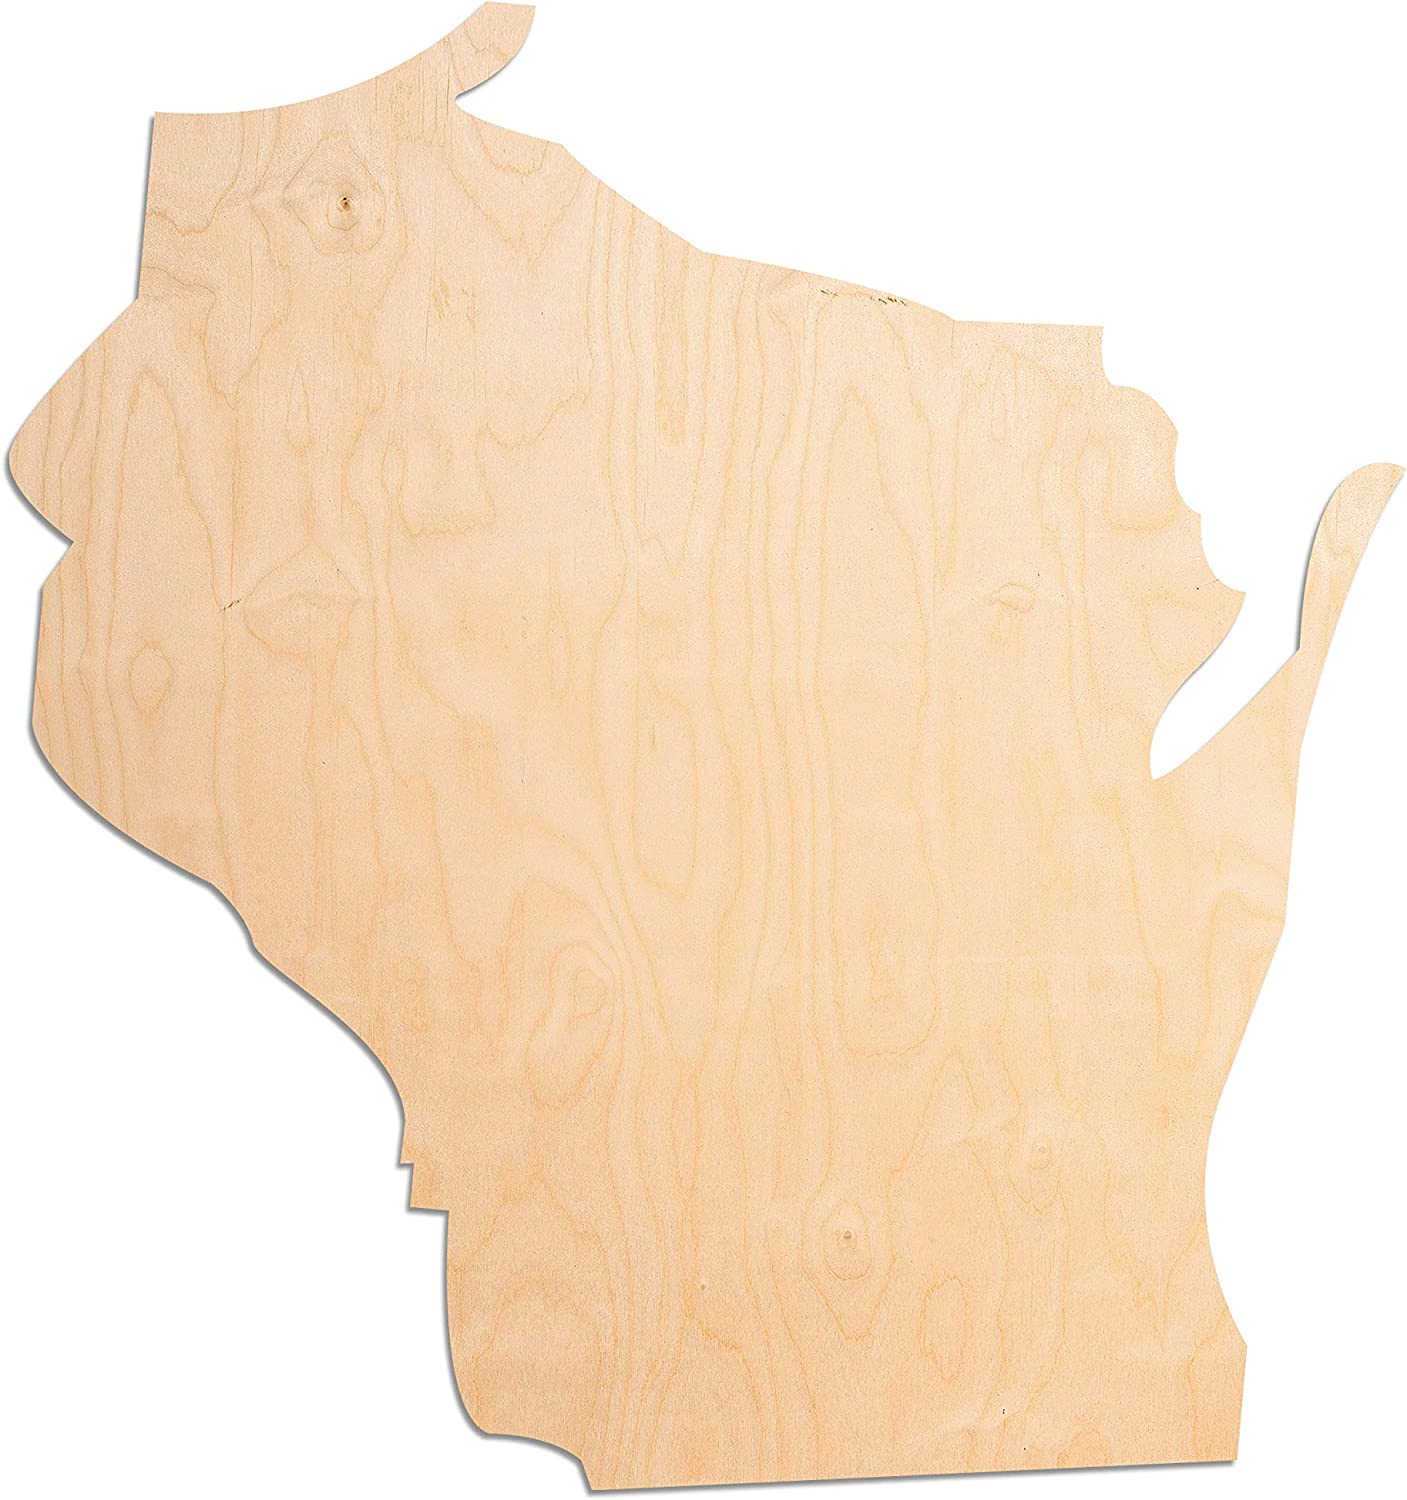 Laser Cut Out Unfinished Wood Shape Craft Supply Maine